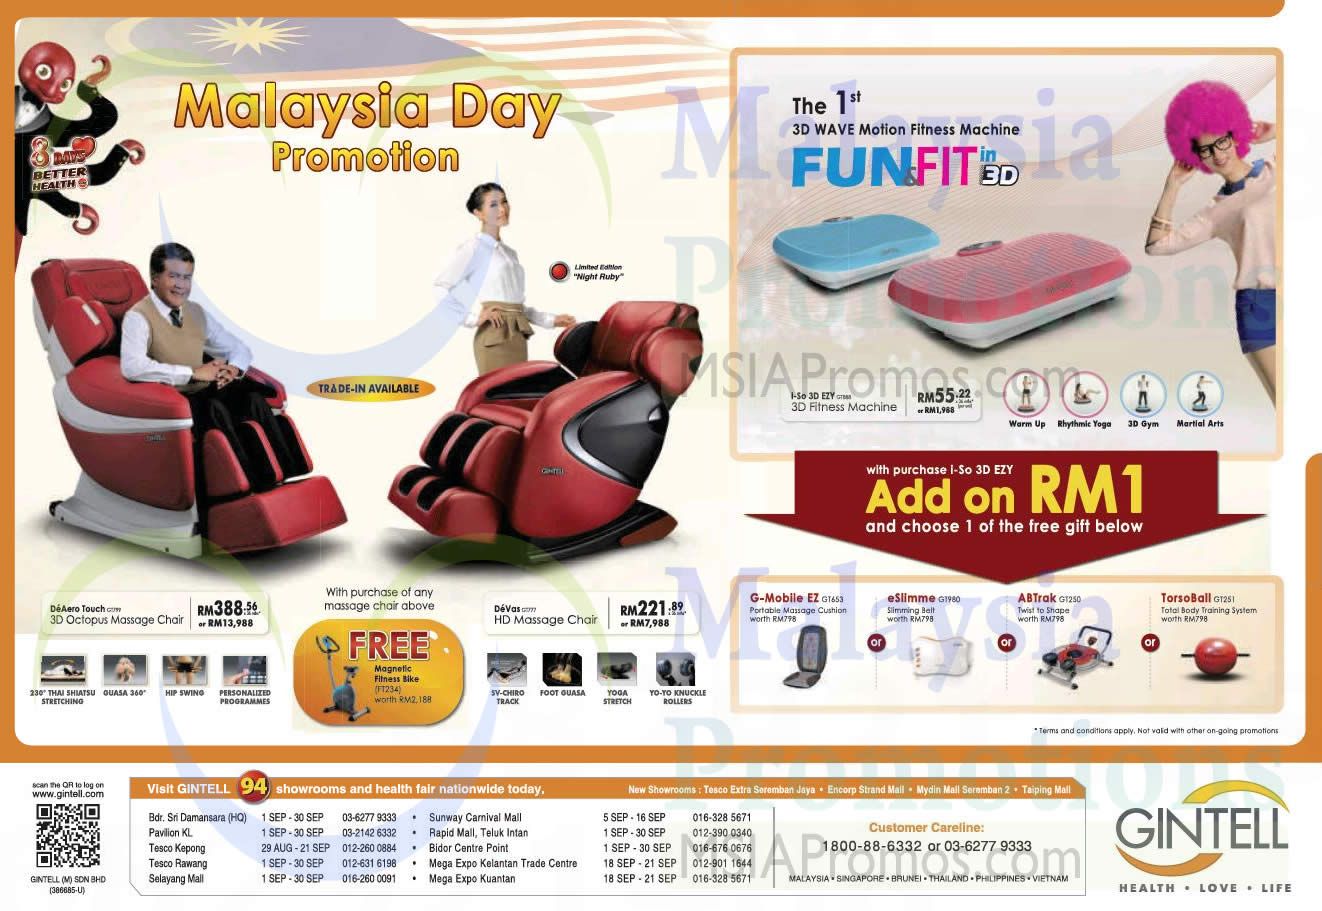 Gintell 16 Sep 2014 Gintell Malaysia Day Massage Chairs Offers 16 Sep 2014